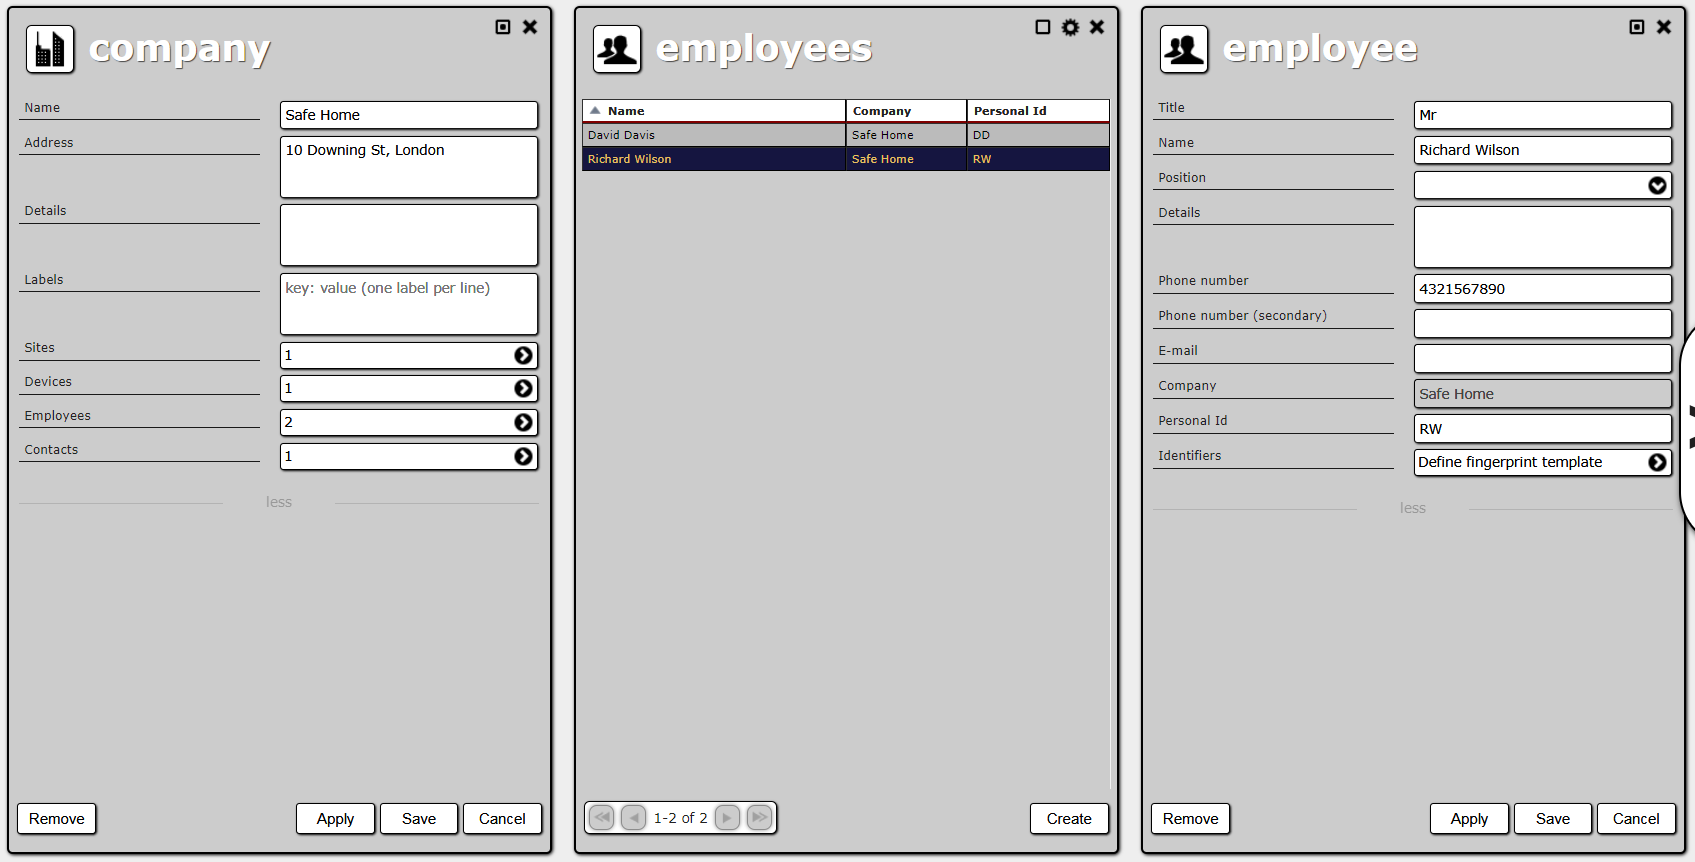 Company details,employee list and employee details